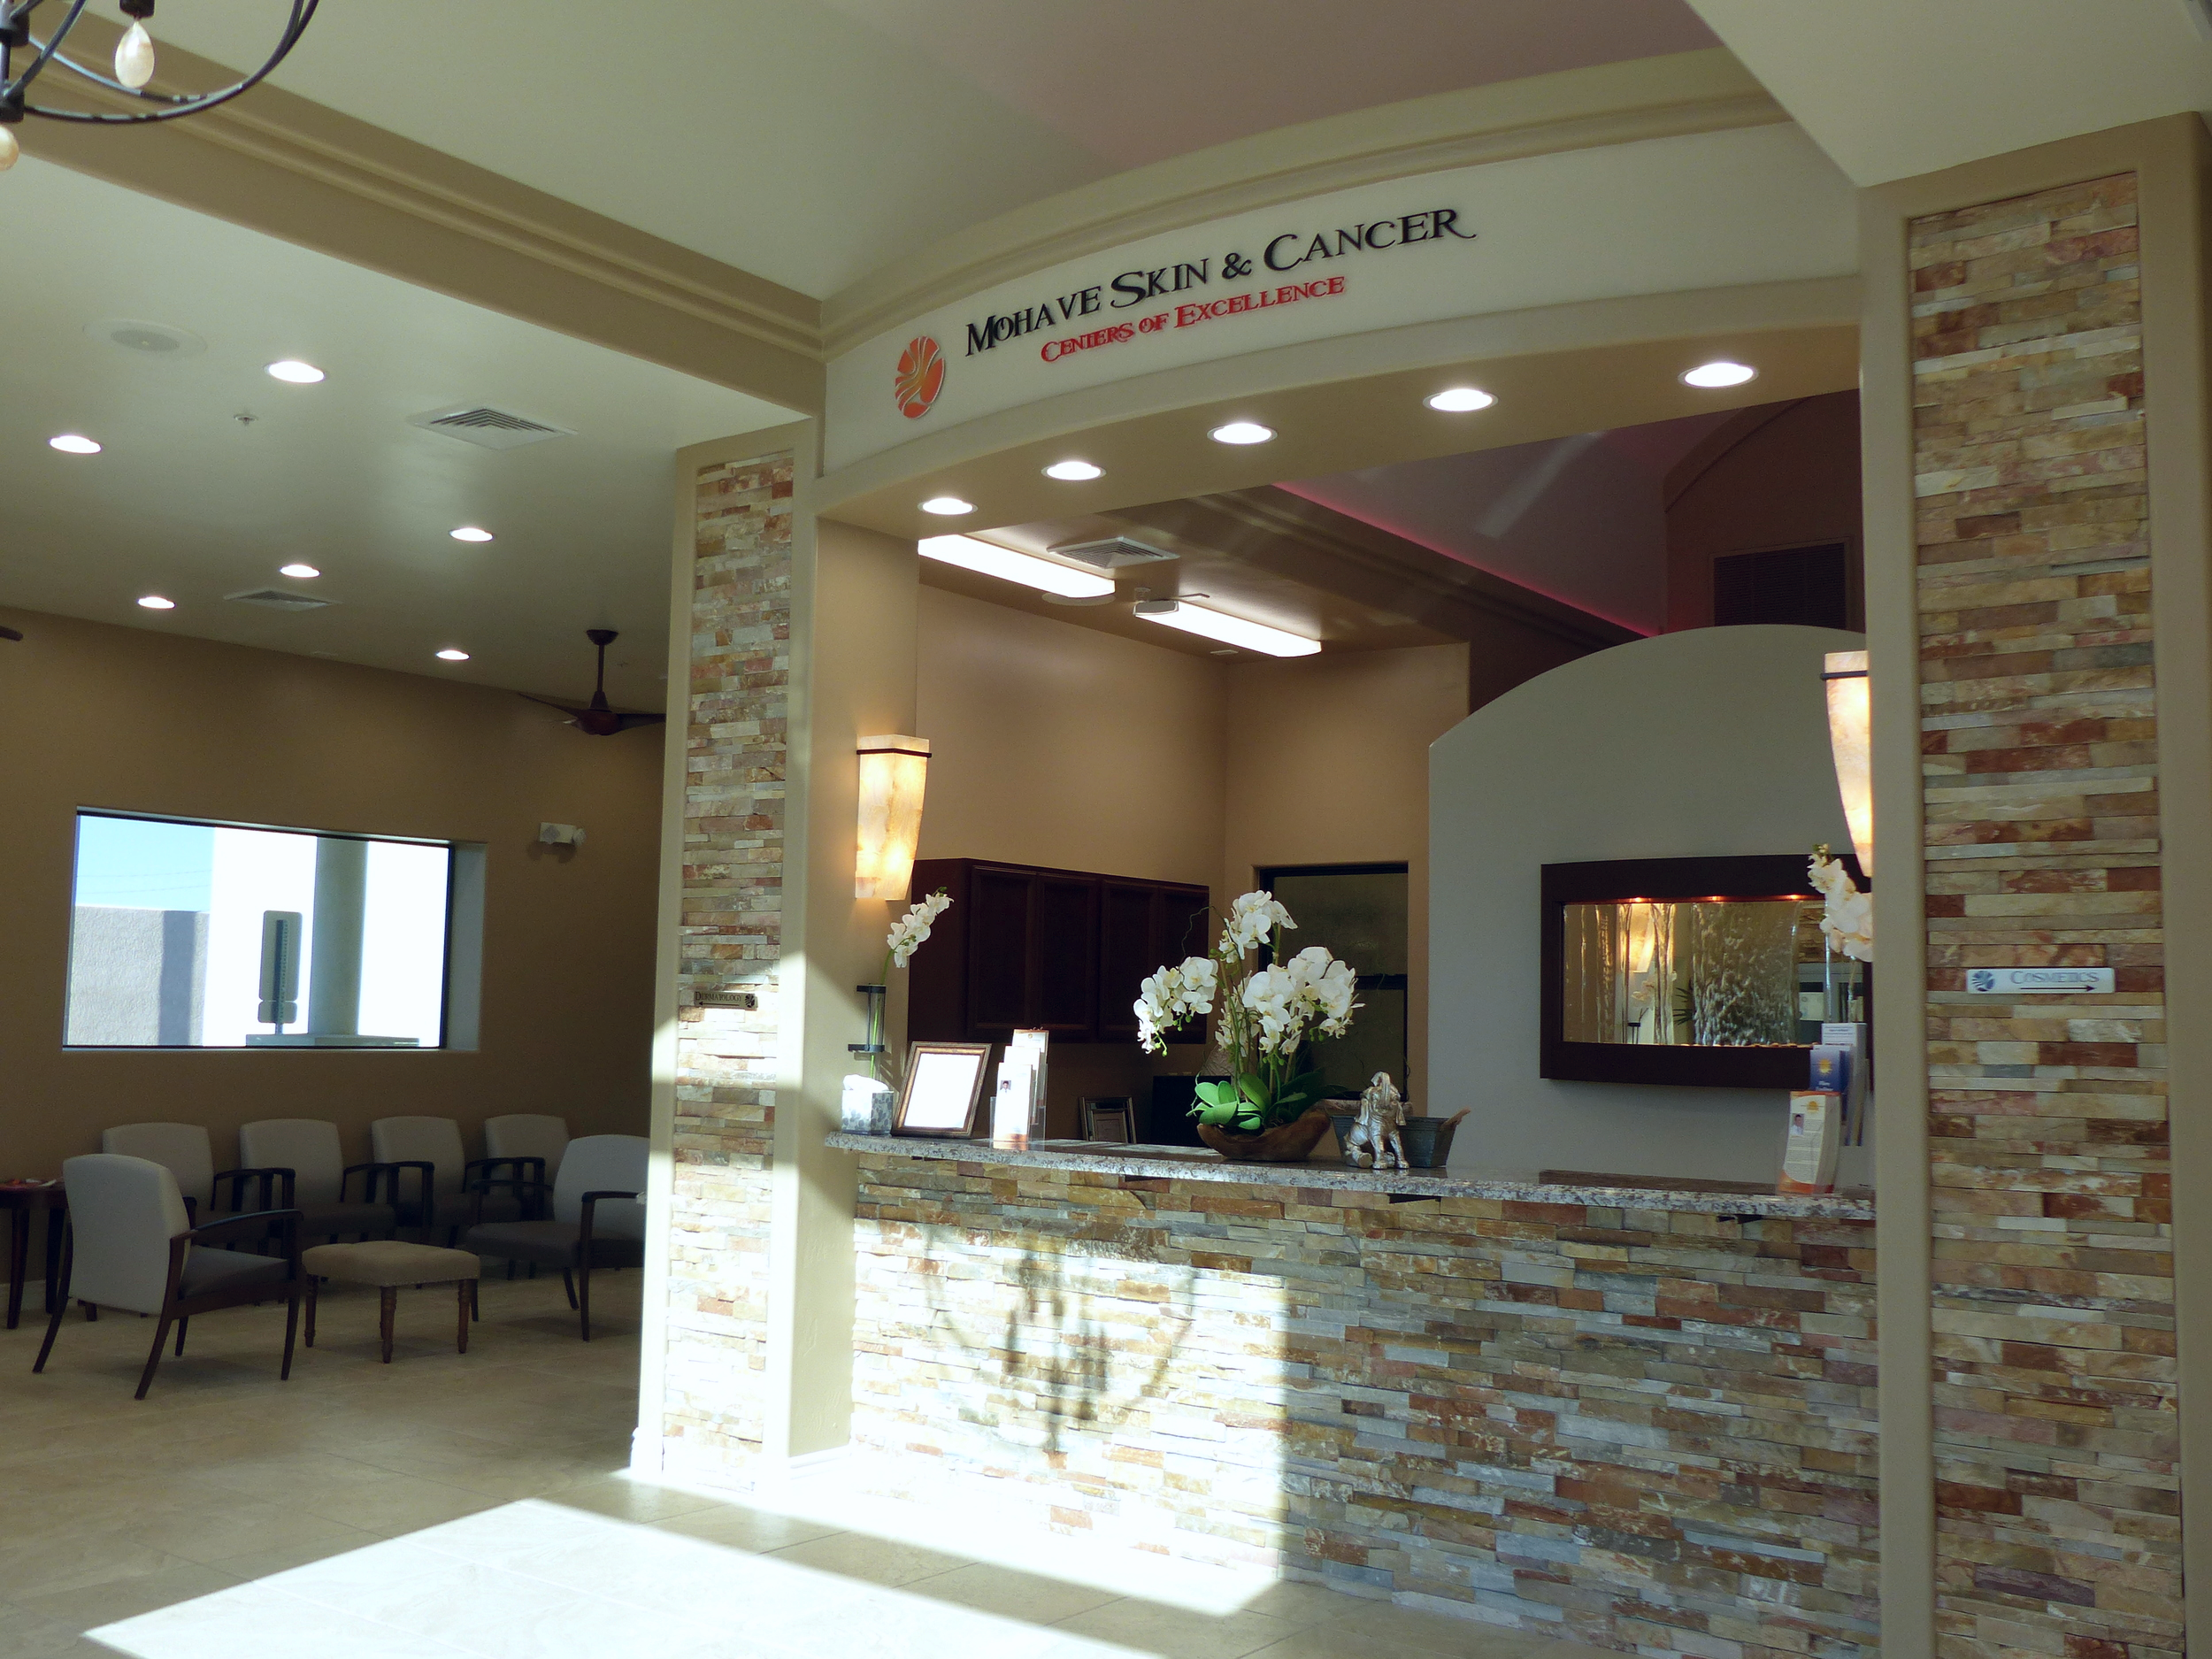 Our beautiful, peaceful waiting room at 1801 Mesquite Ave., Lake Havasu City, AZ.